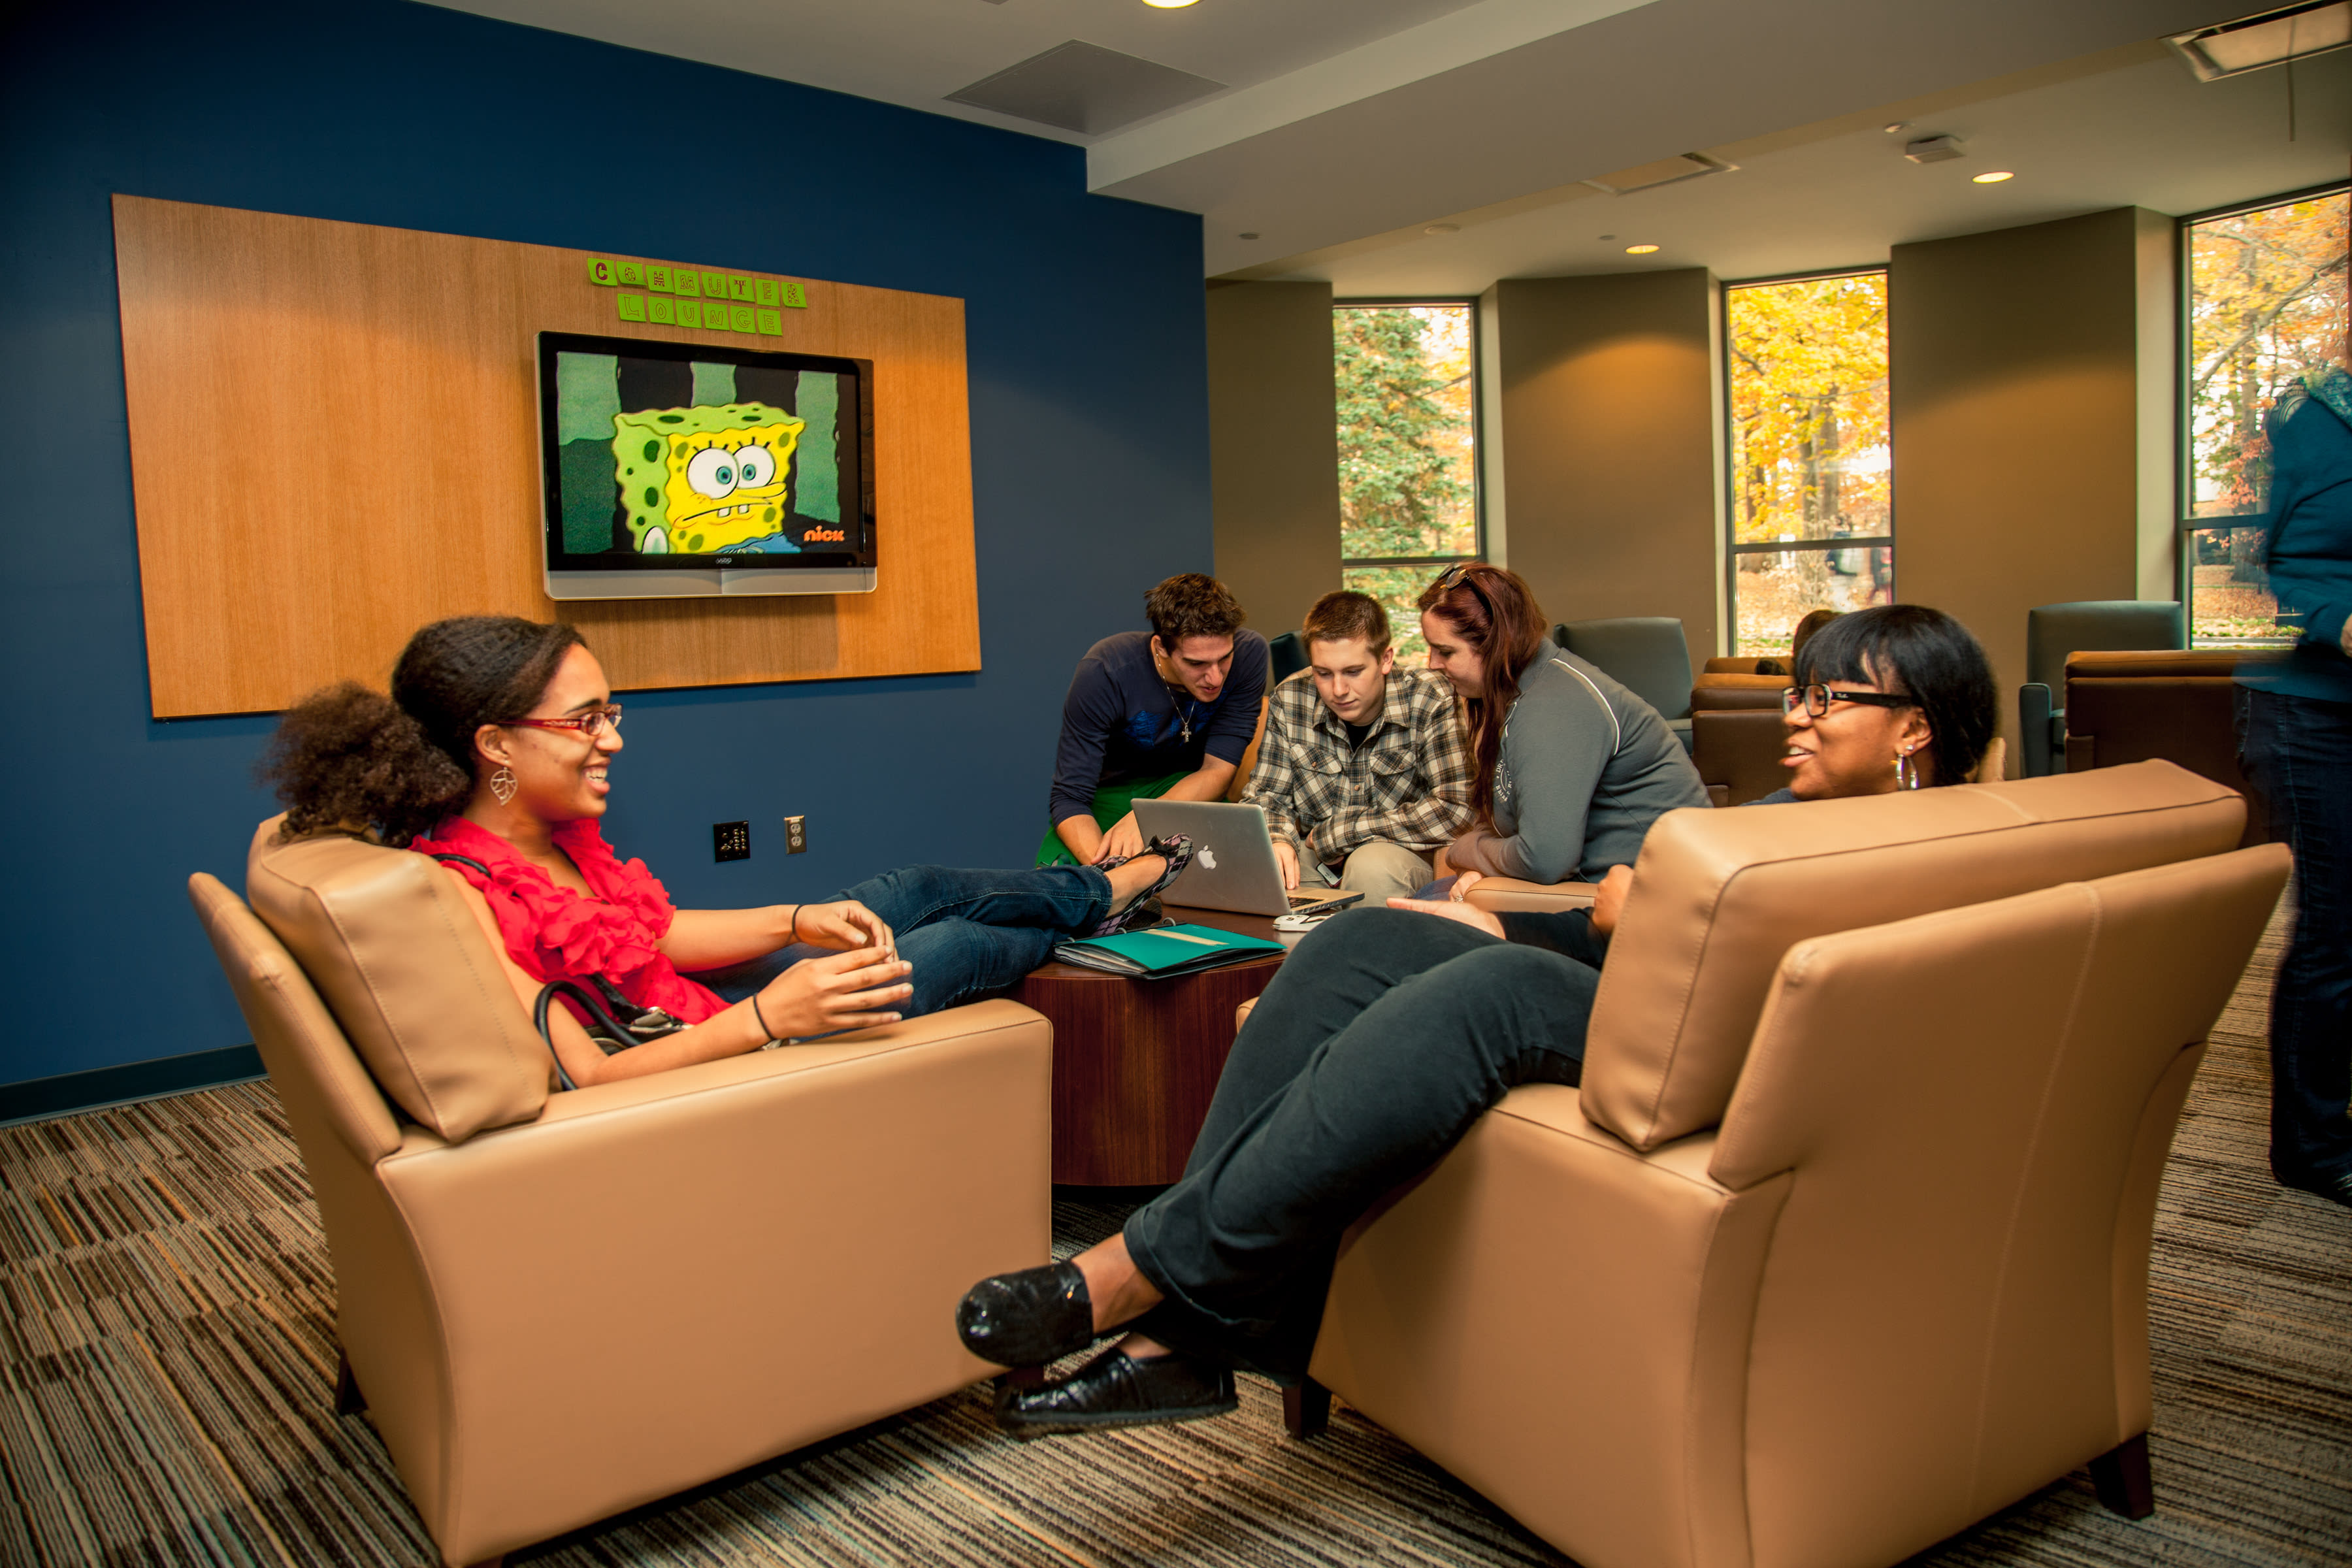 Every residence hall is equipped with lounges and TVs